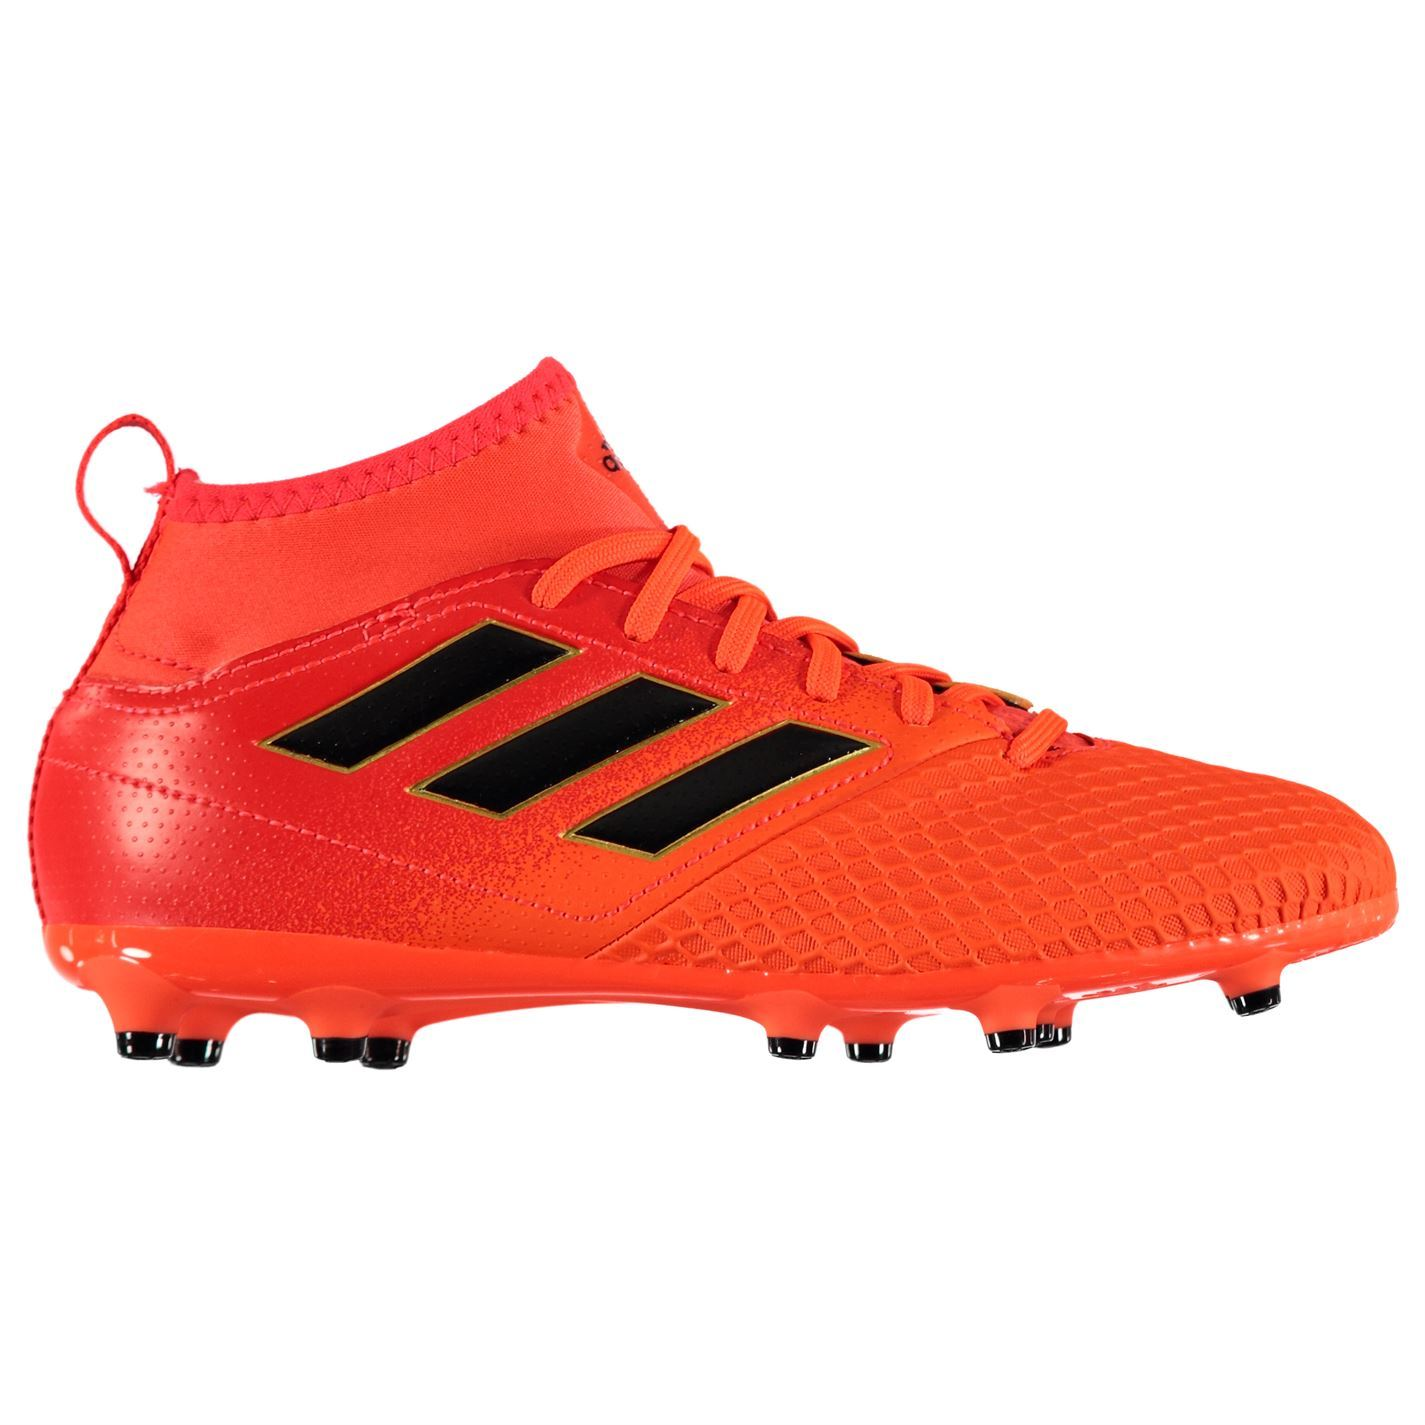 d82ab90f324b ... adidas Ace 17.3 Primemesh Firm Ground Football Boots Juniors Orange  Soccer Shoes ...